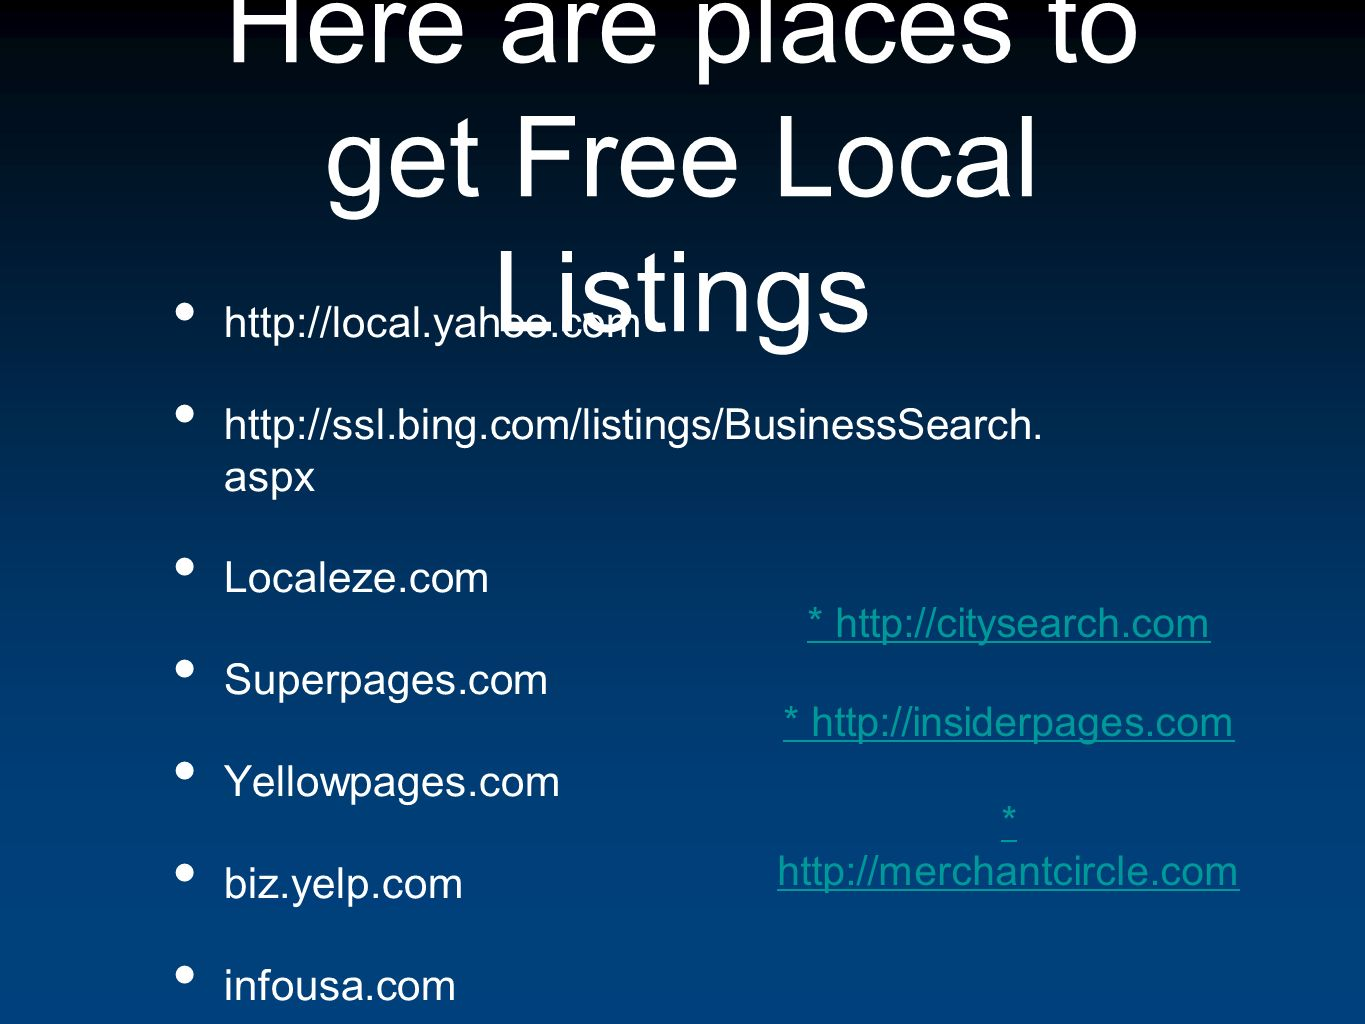 Here are places to get Free Local Listings http://local.yahoo.com http://ssl.bing.com/listings/BusinessSearch.